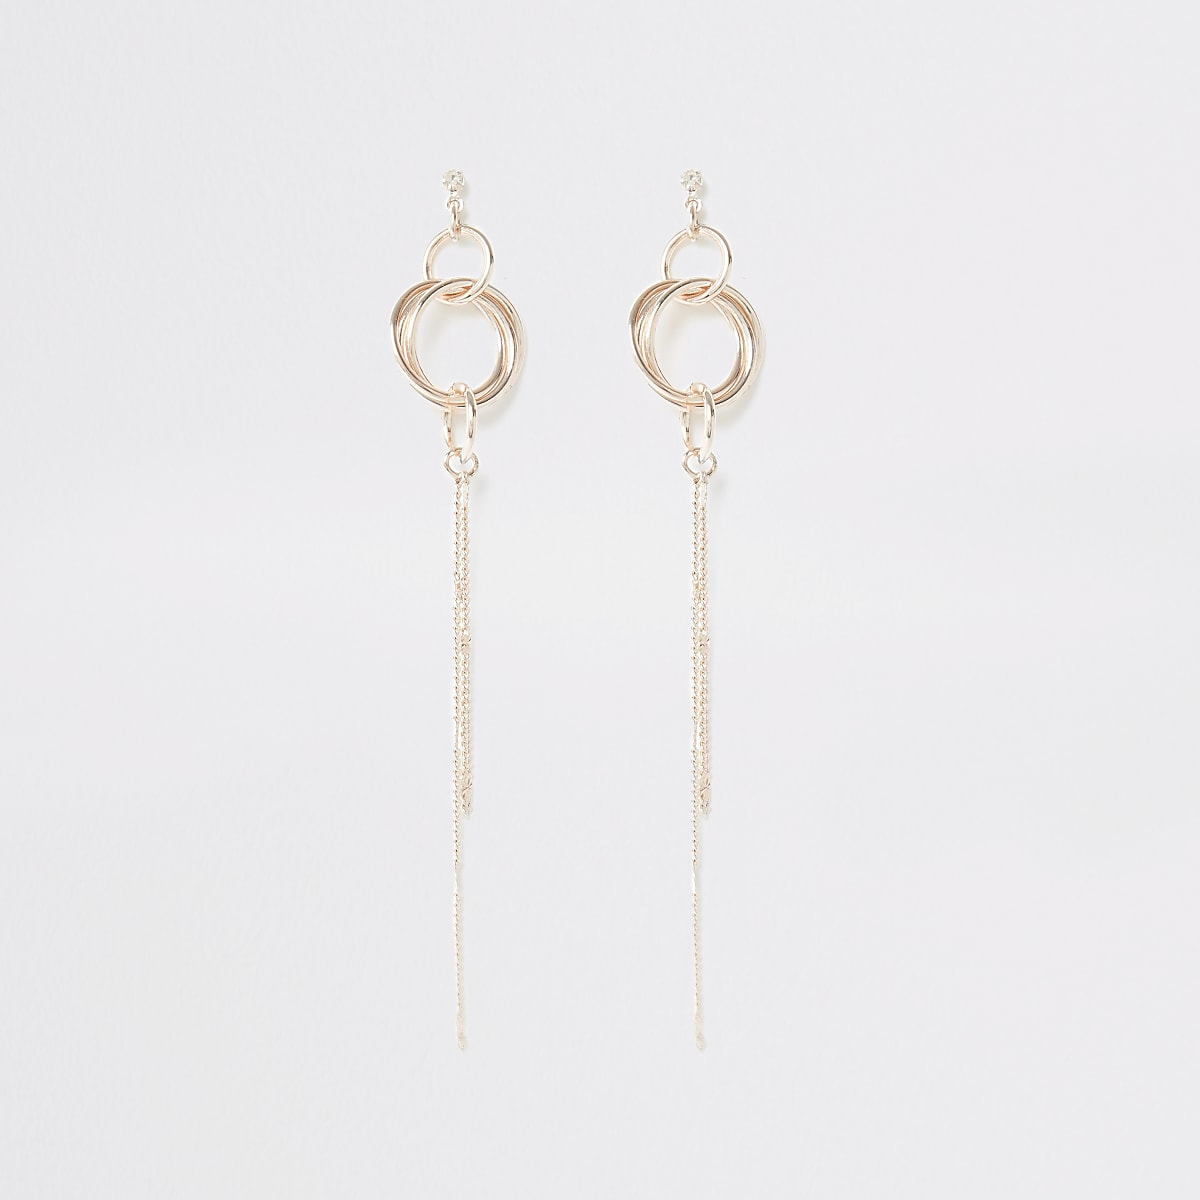 Rose gold color chain drop earrings